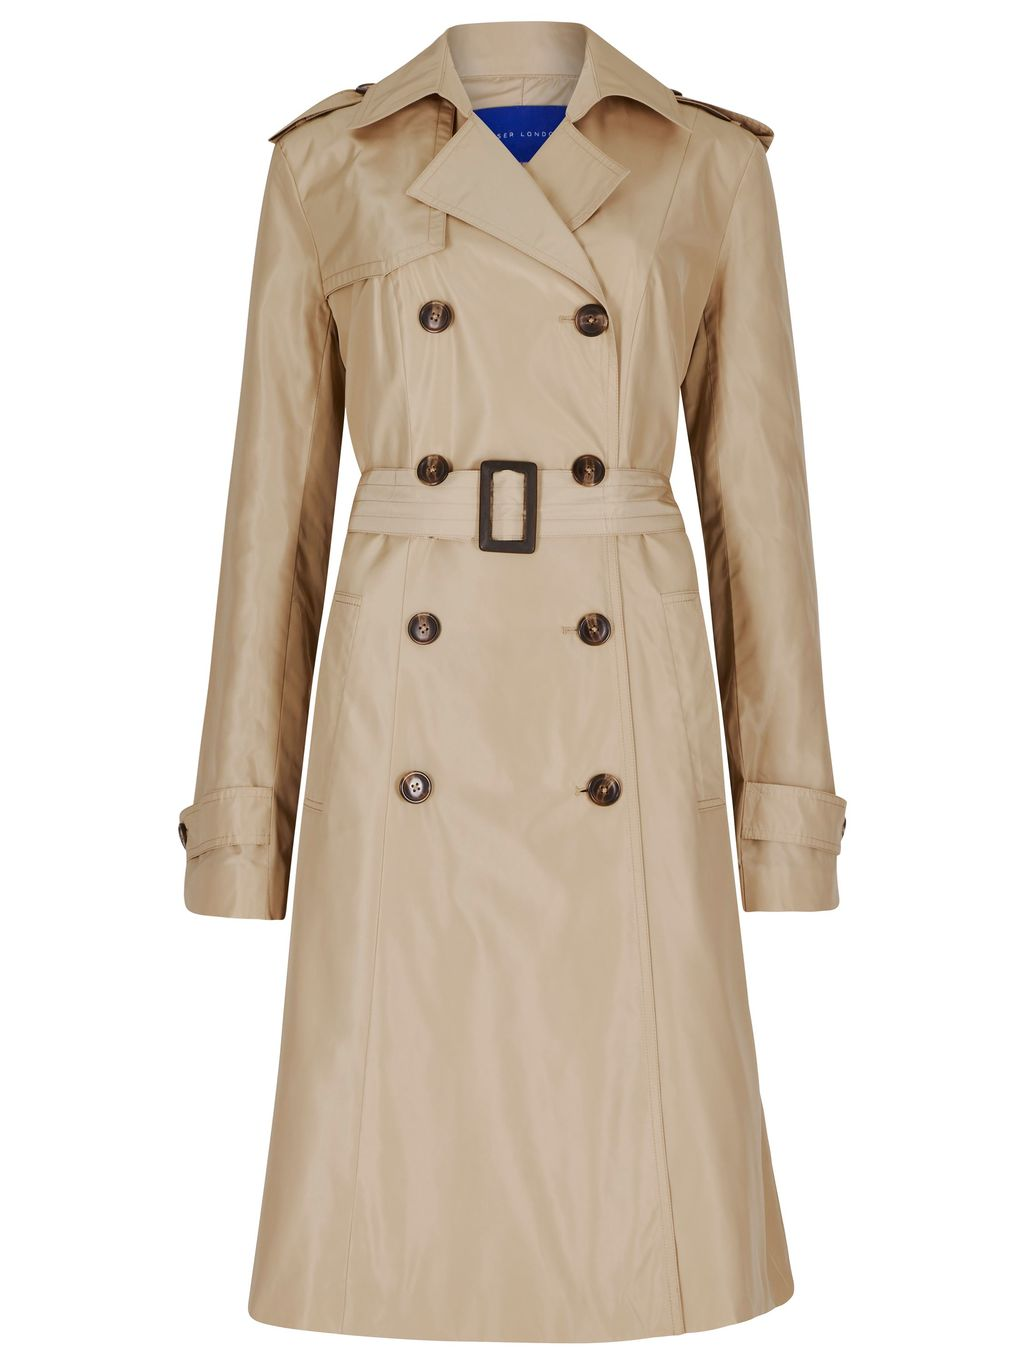 Winser Trench Coat, Beige - pattern: plain; style: trench coat; length: on the knee; collar: standard lapel/rever collar; predominant colour: stone; occasions: casual, creative work; fit: tailored/fitted; fibres: polyester/polyamide - 100%; shoulder detail: discreet epaulette; sleeve length: long sleeve; sleeve style: standard; collar break: medium; pattern type: fabric; texture group: other - light to midweight; season: s/s 2016; wardrobe: basic